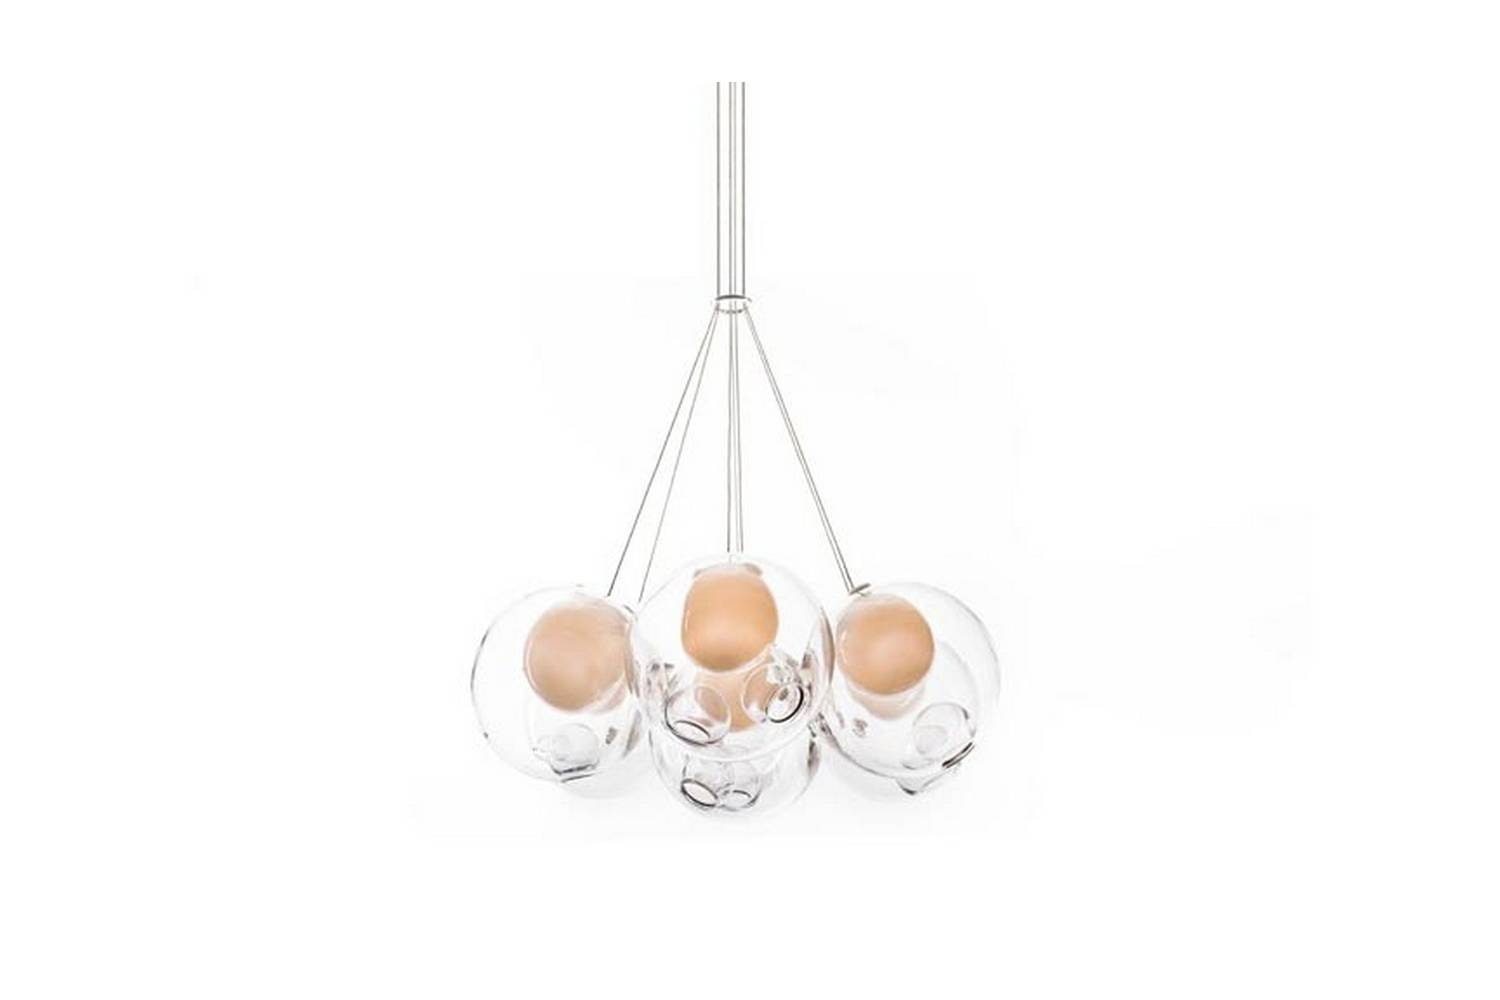 28.7 Cluster Suspension Lamp by Omer Arbel for Bocci